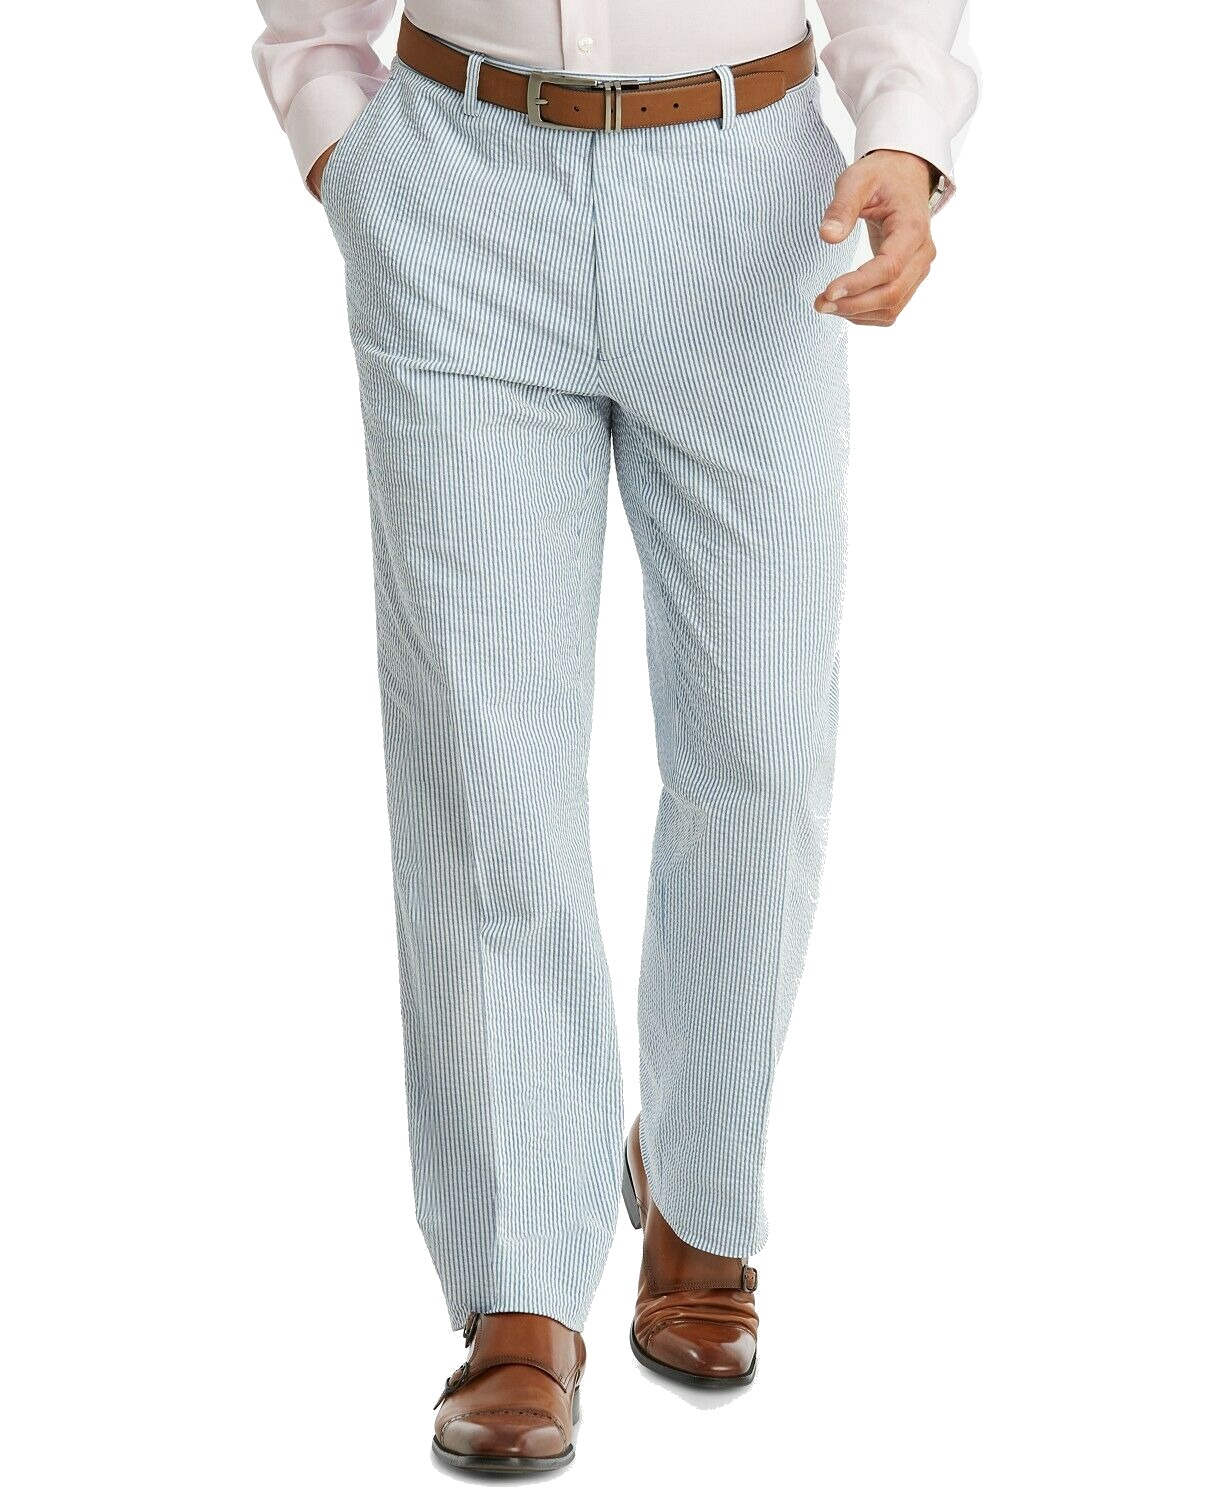 Tommy-Hilfiger-NEW-White-Blue-Mens-Size-36X34-Stripe-Tailored-Pants